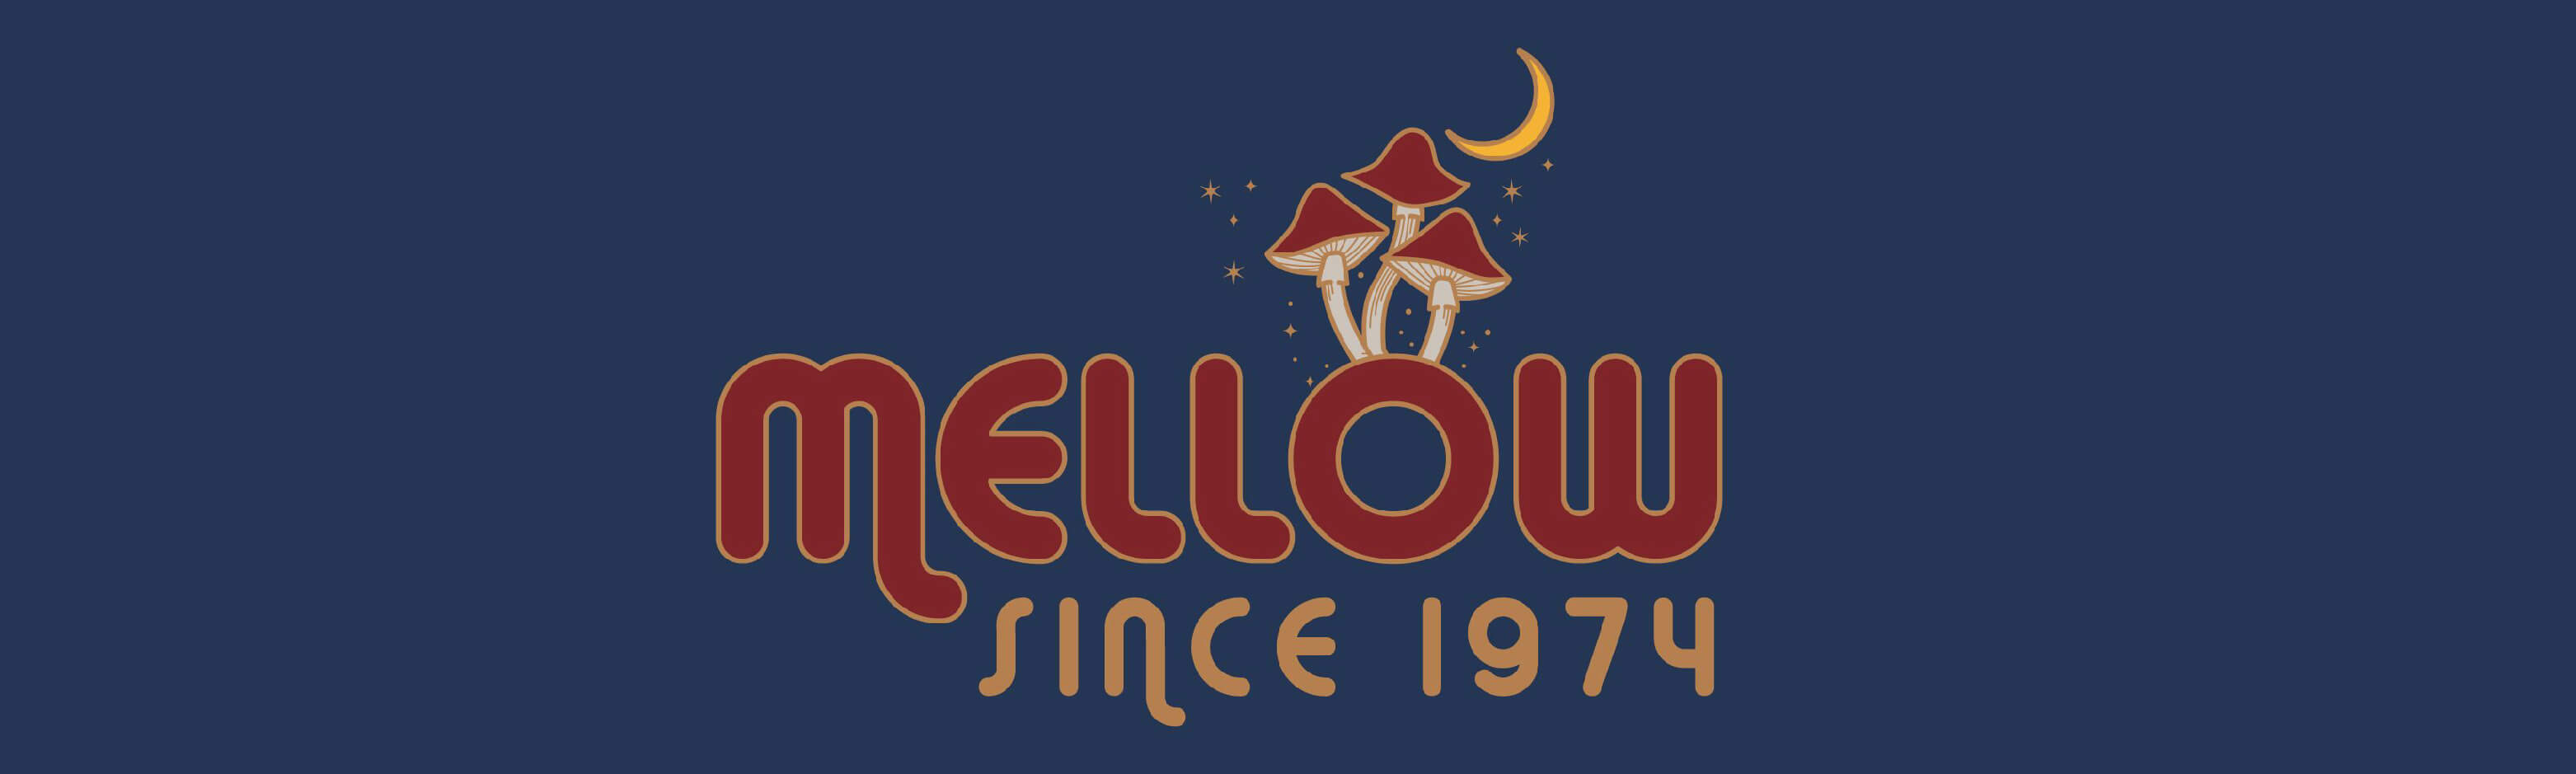 Generic mellow banner blue background since 1974